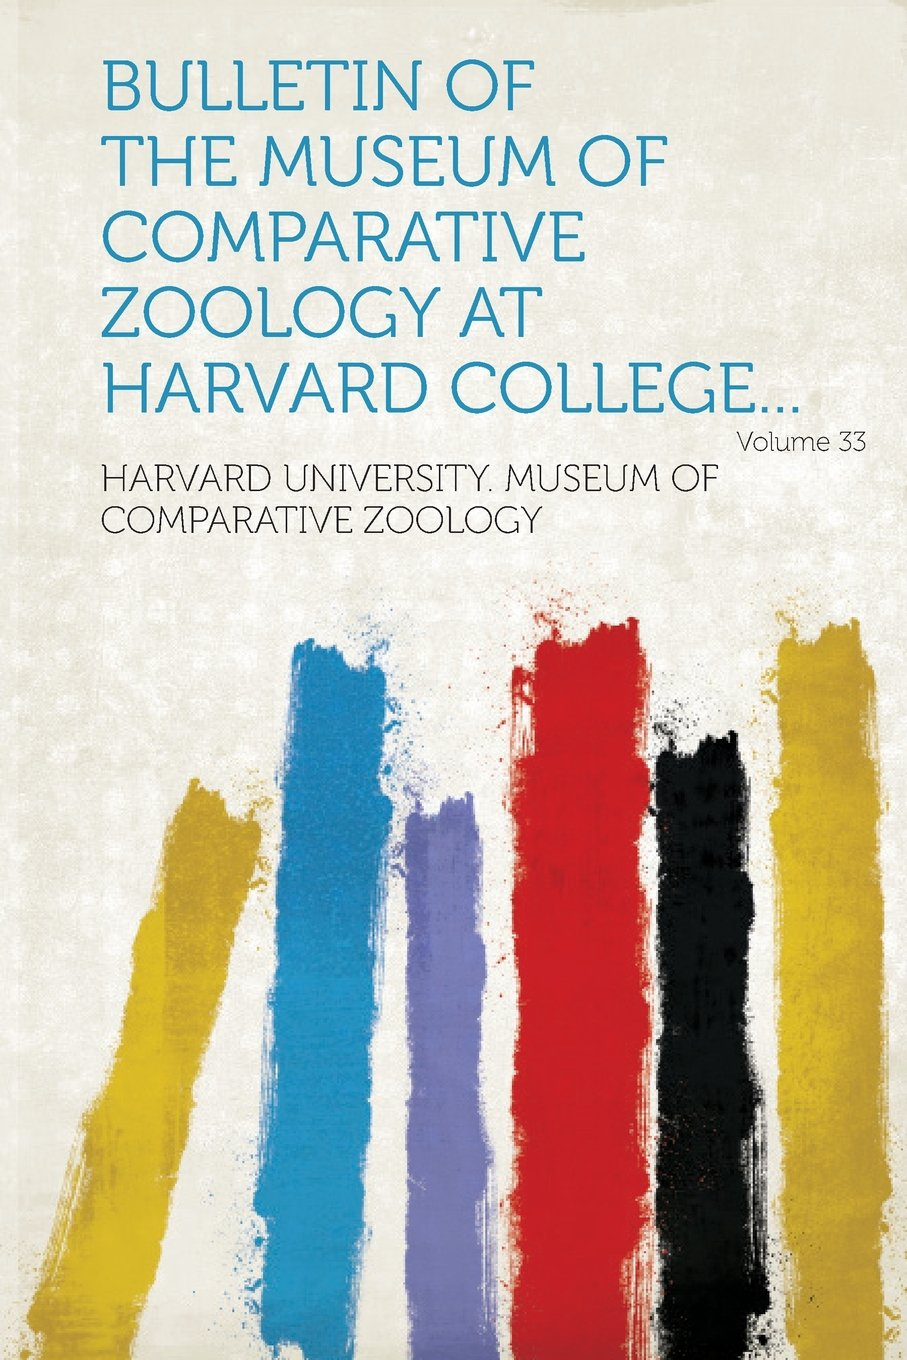 Bulletin of the Museum of Comparative Zoology at Harvard College... Volume 33 PDF